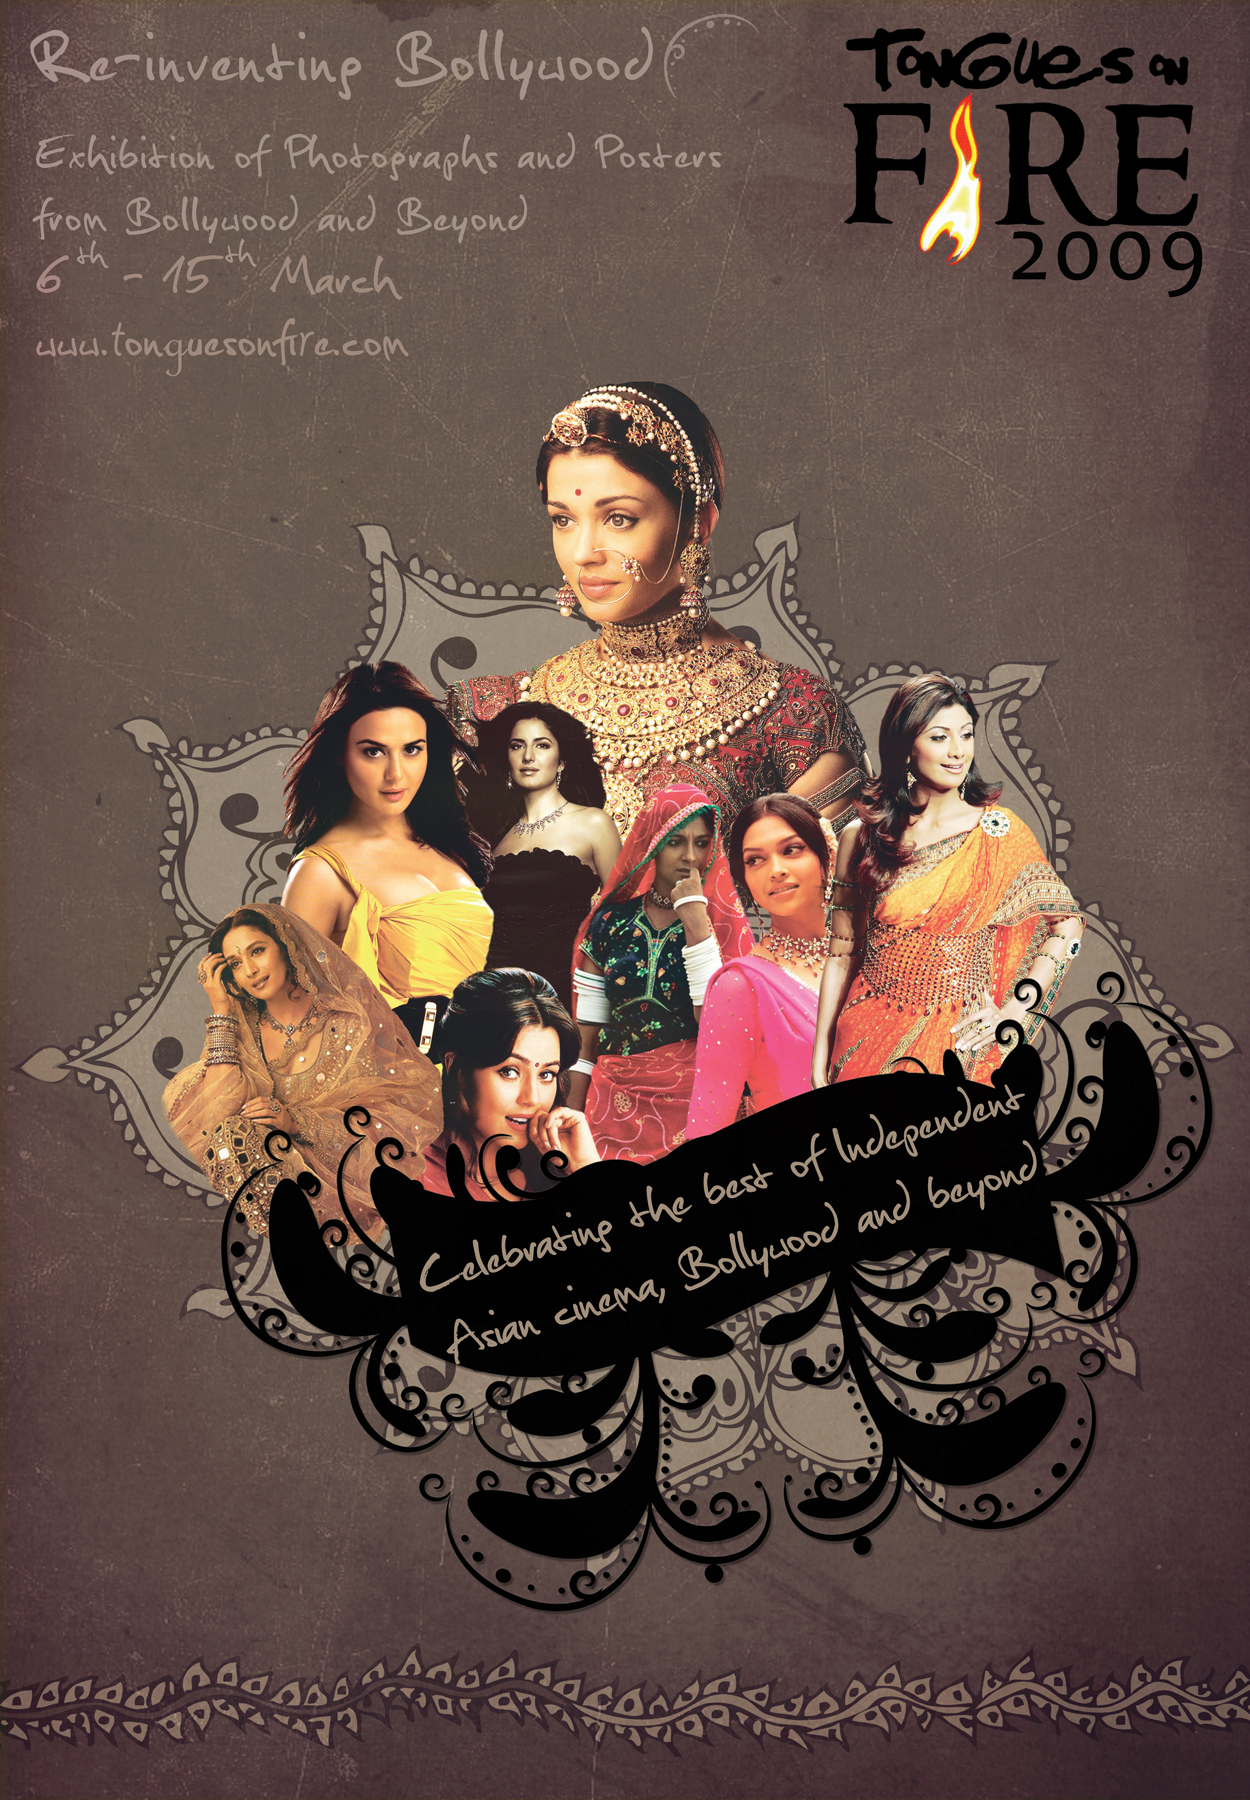 Re-inventing Bollywood poster